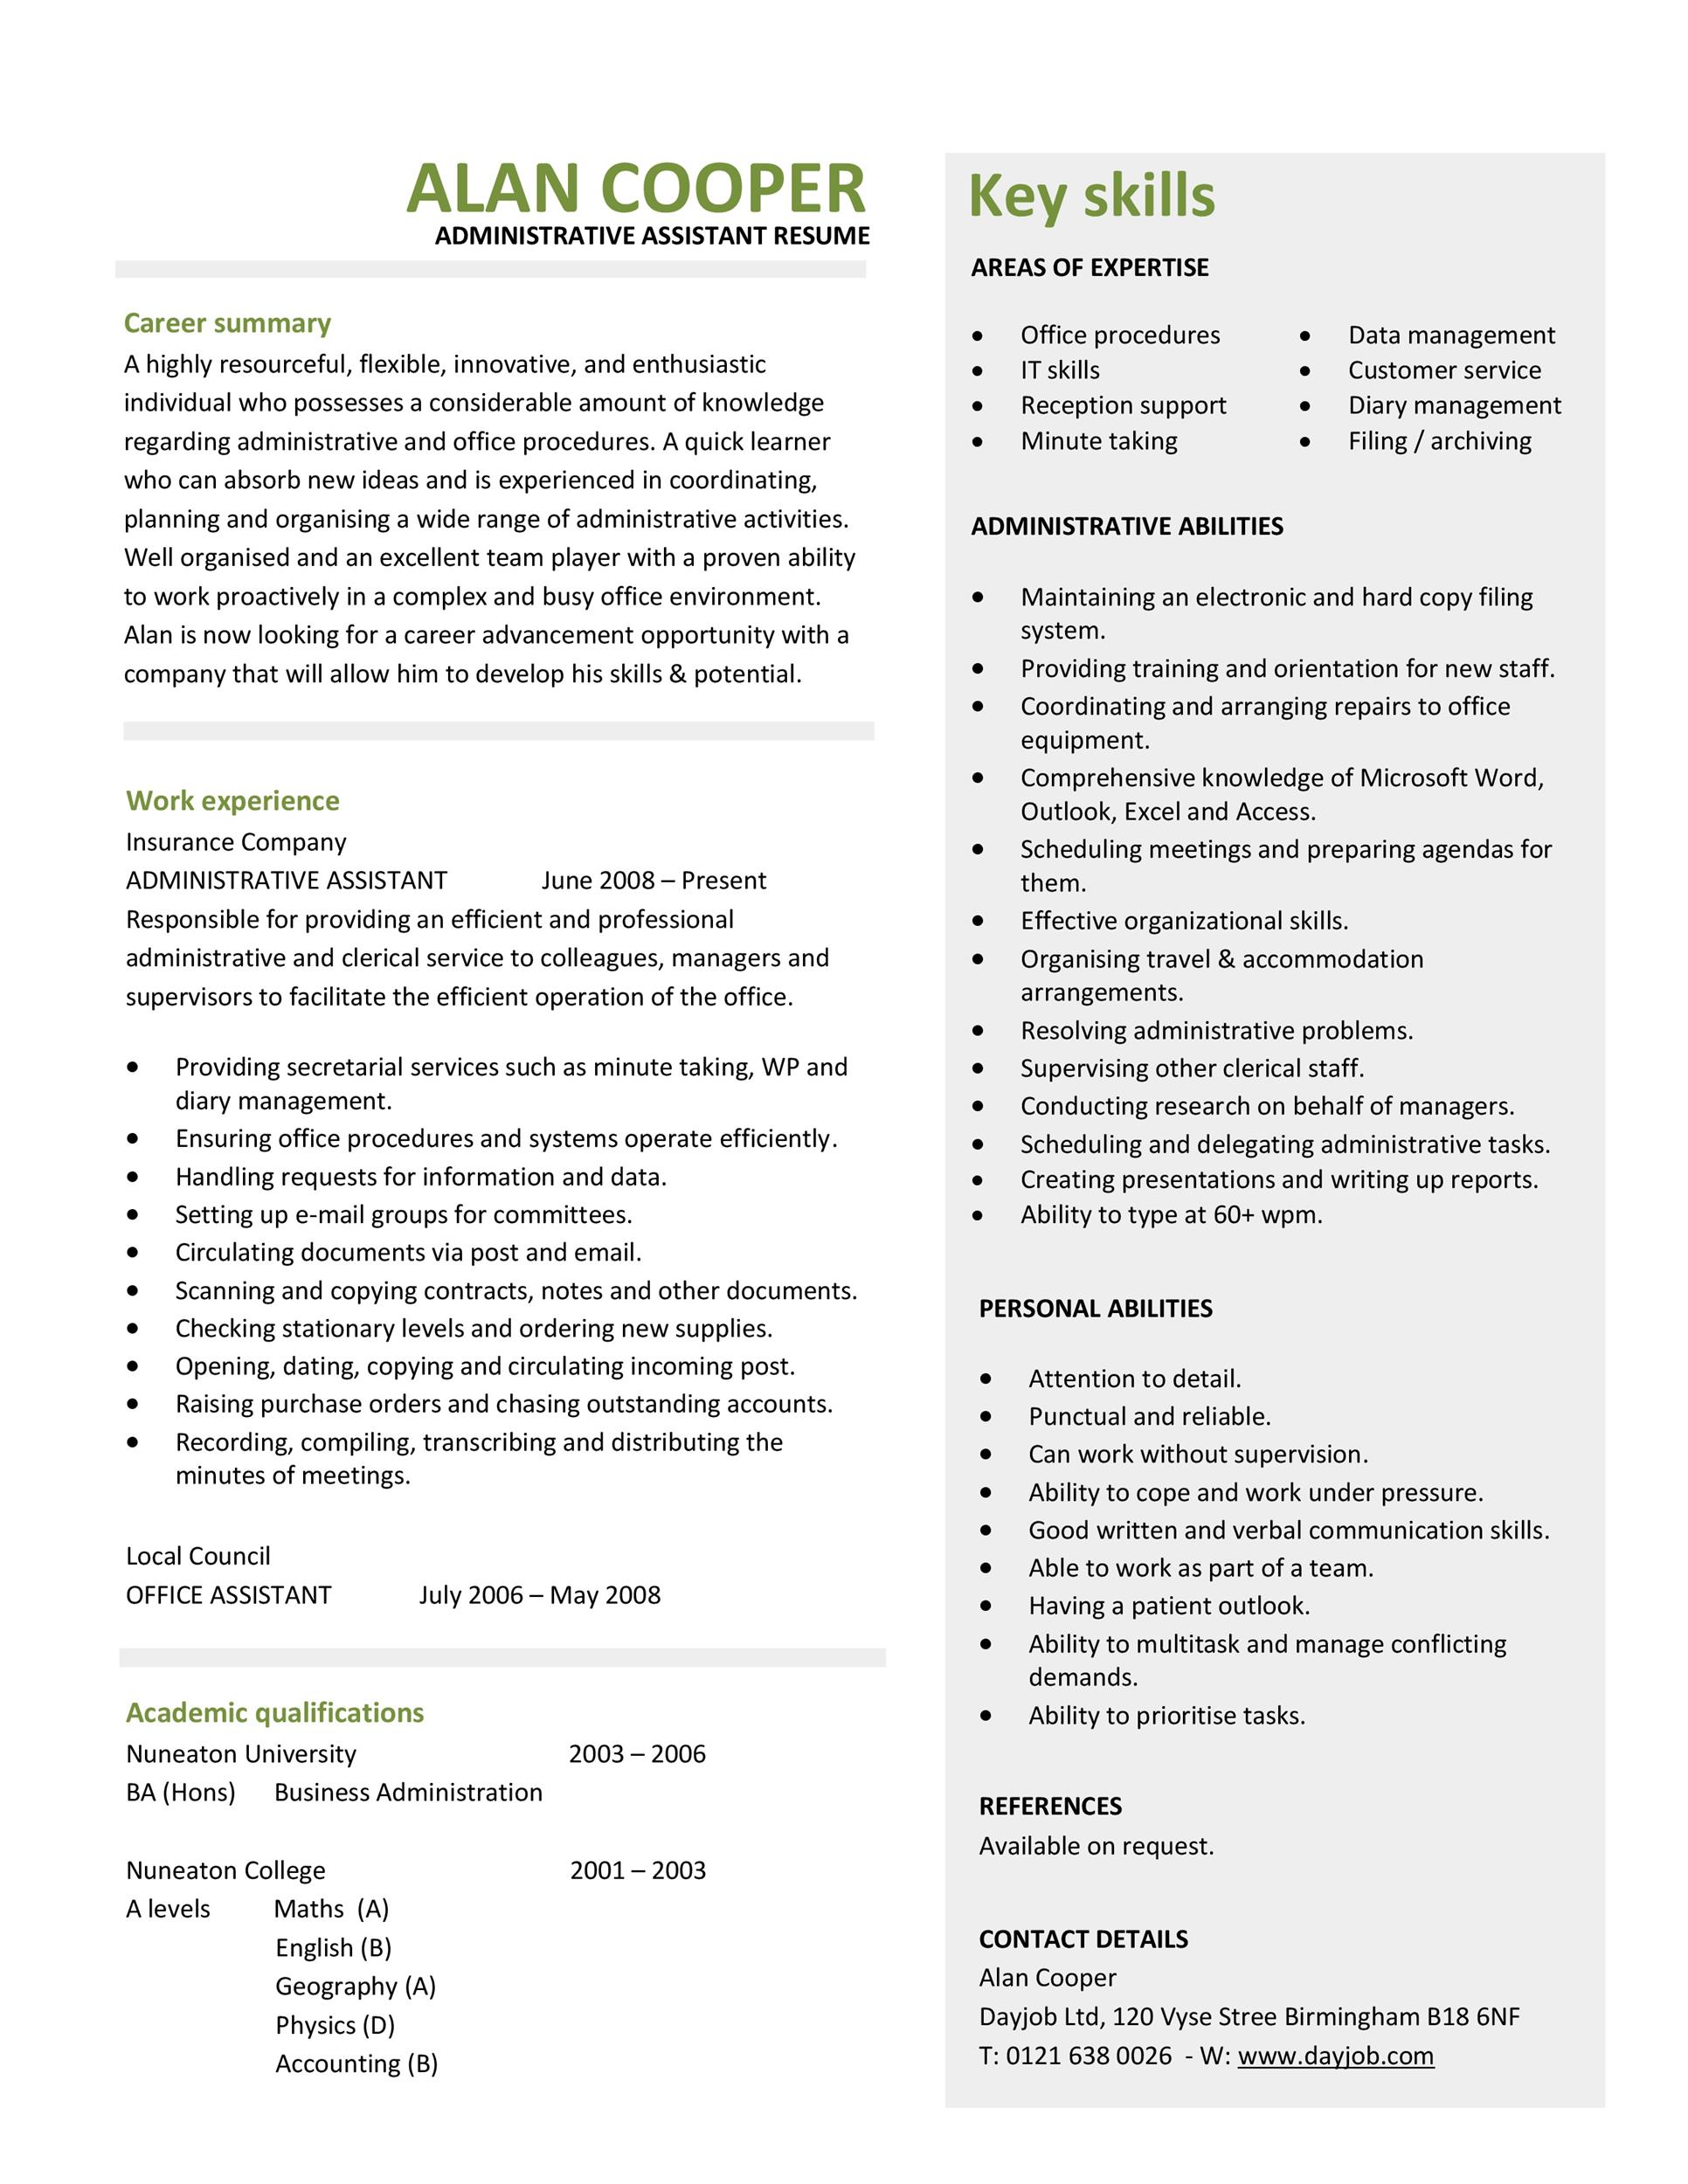 20+ Free Administrative Assistant Resume Samples ᐅ Template Lab